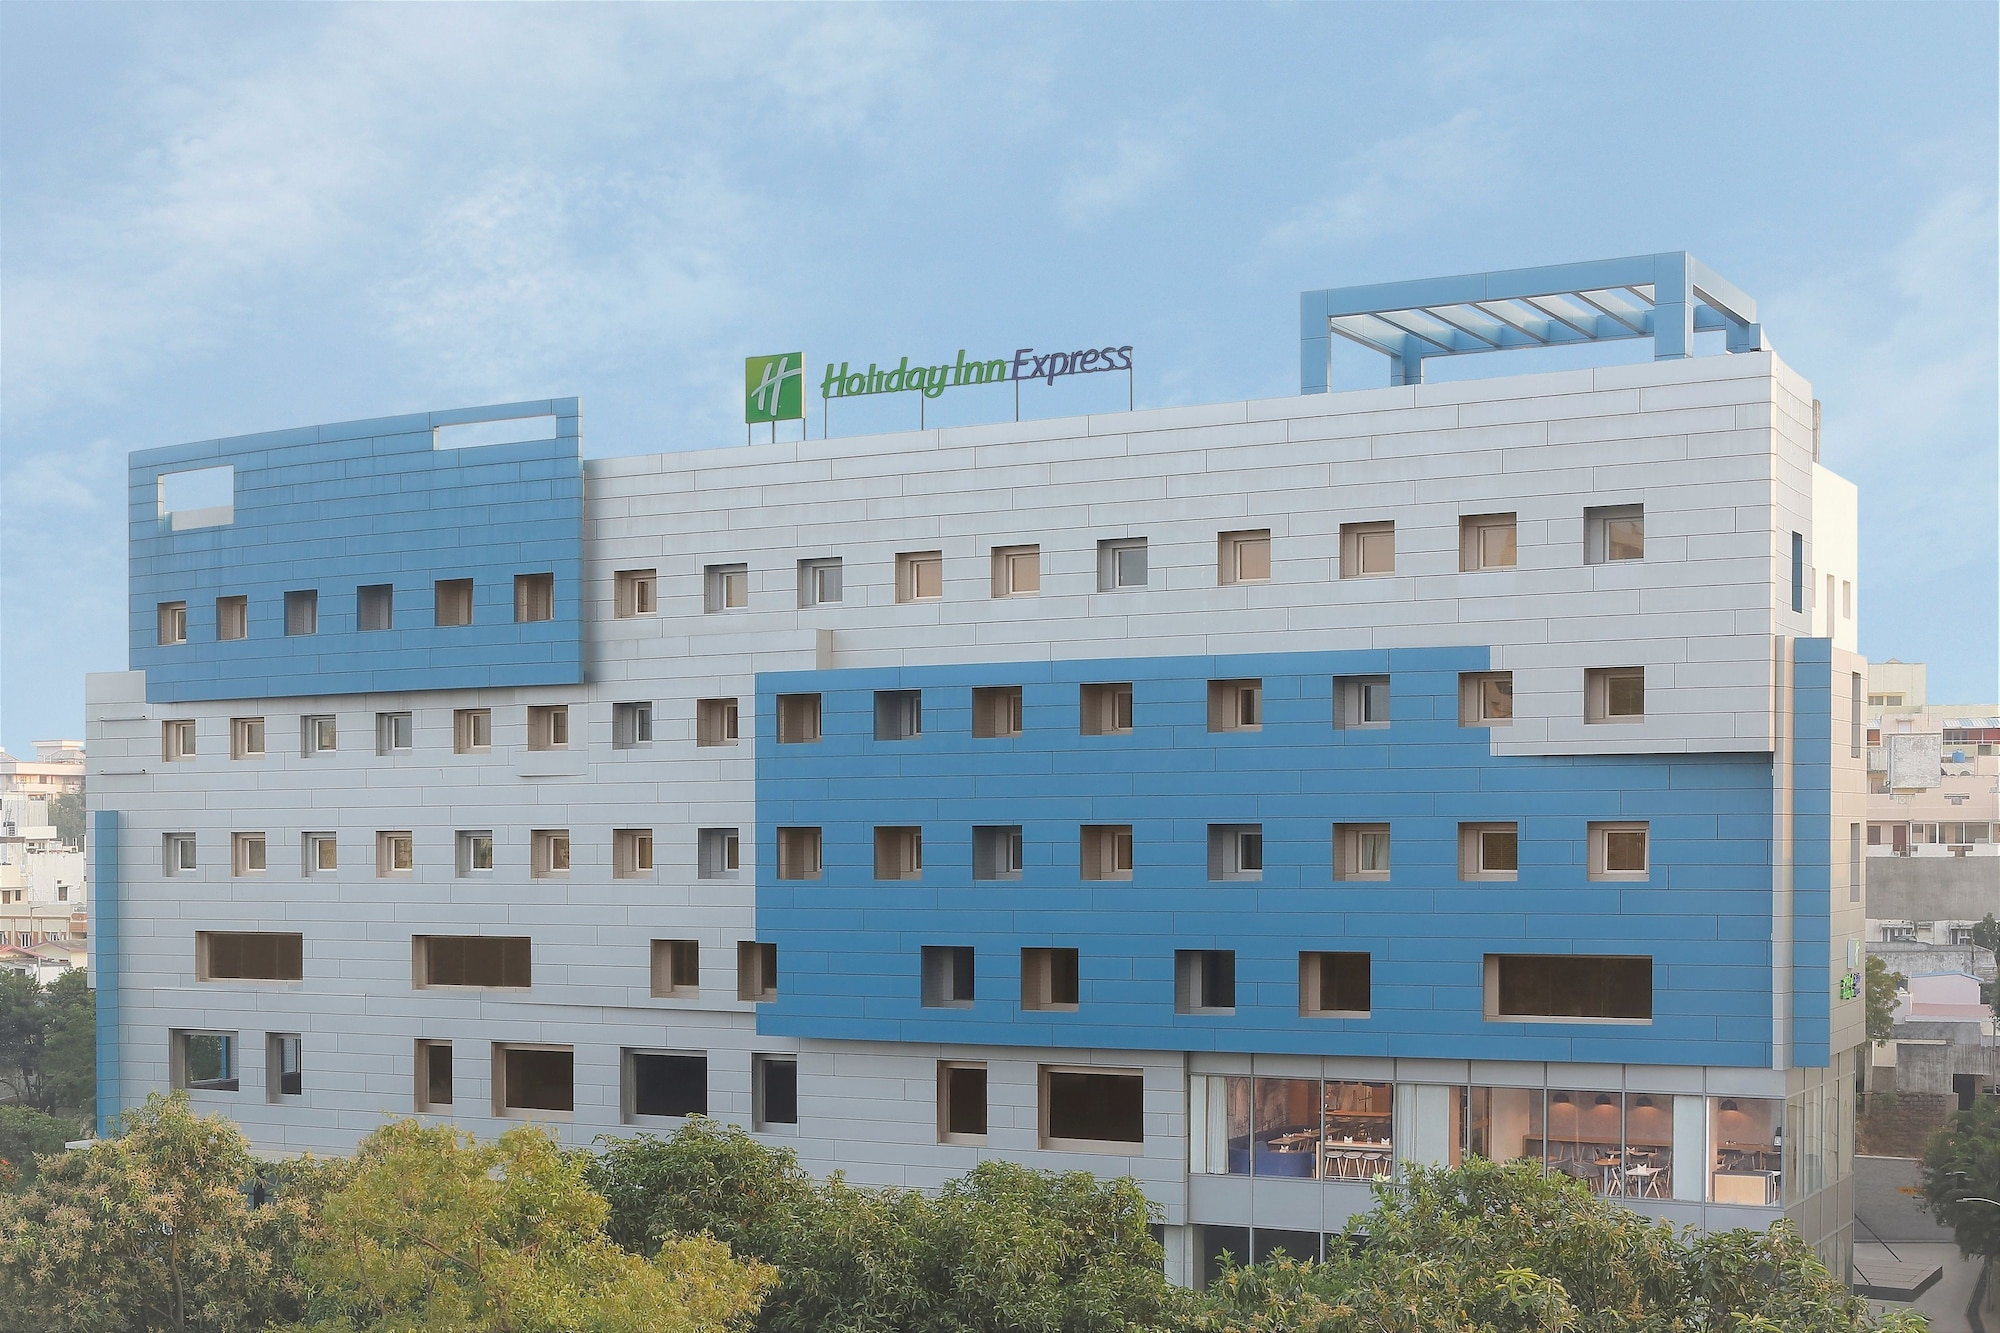 Holiday Inn Express Hyderabad Banjara Hills, Hyderabad